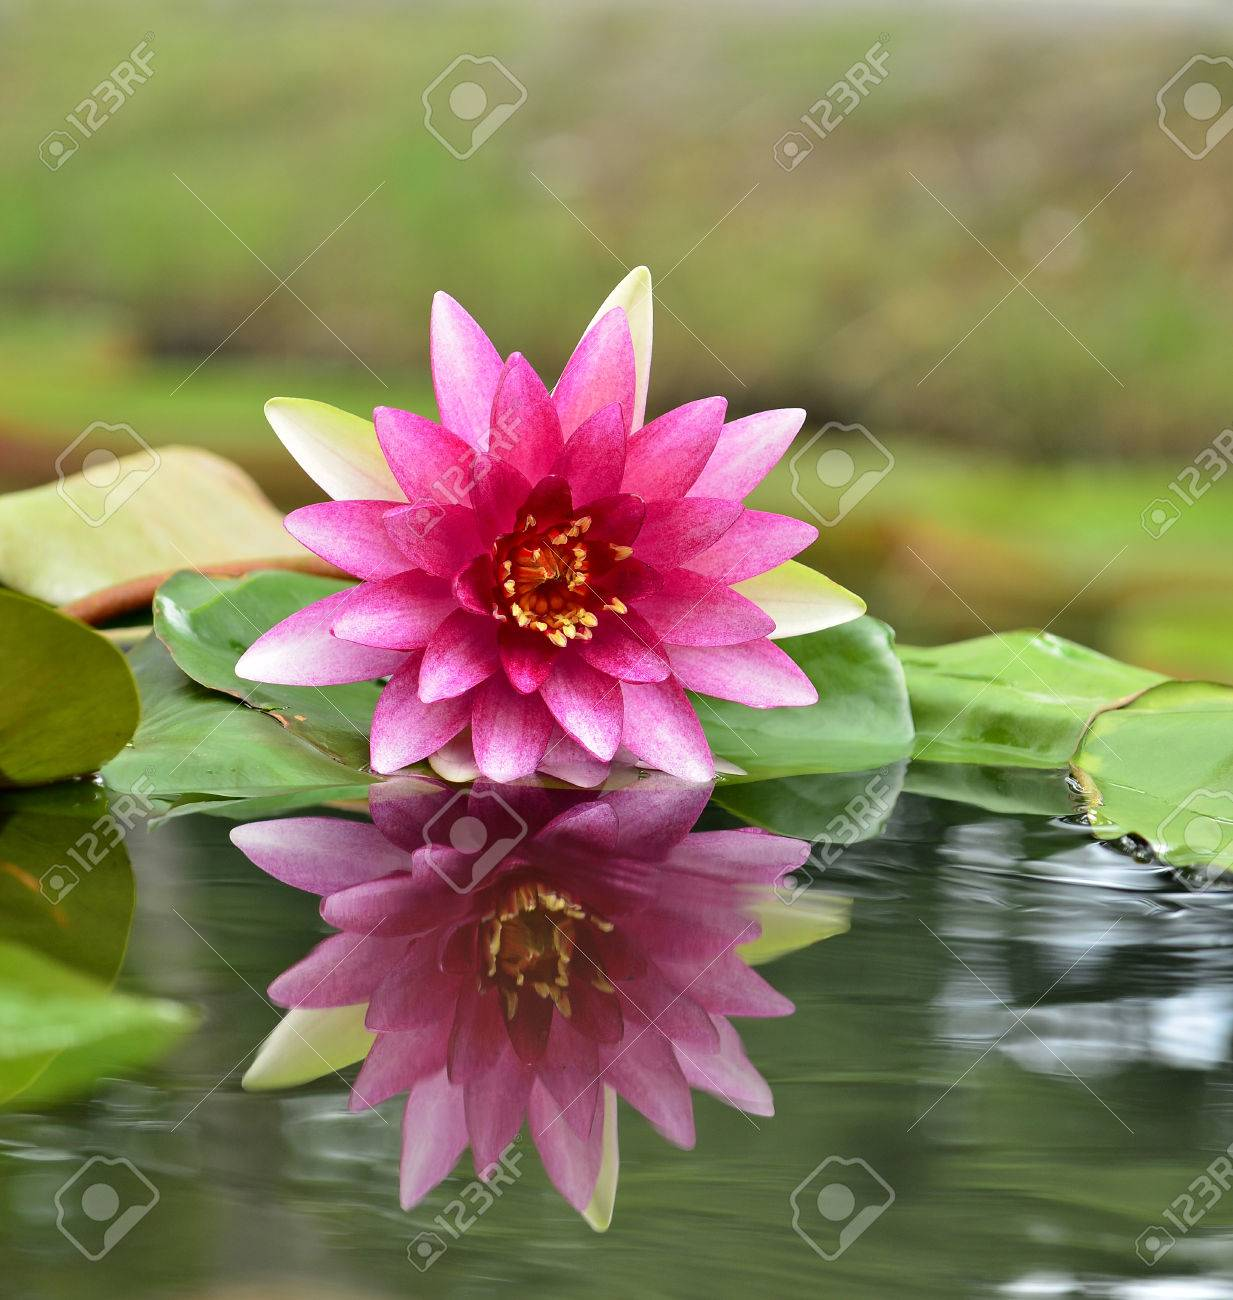 pink and red lotus flower or water lily with perfect reflection, Natural flower